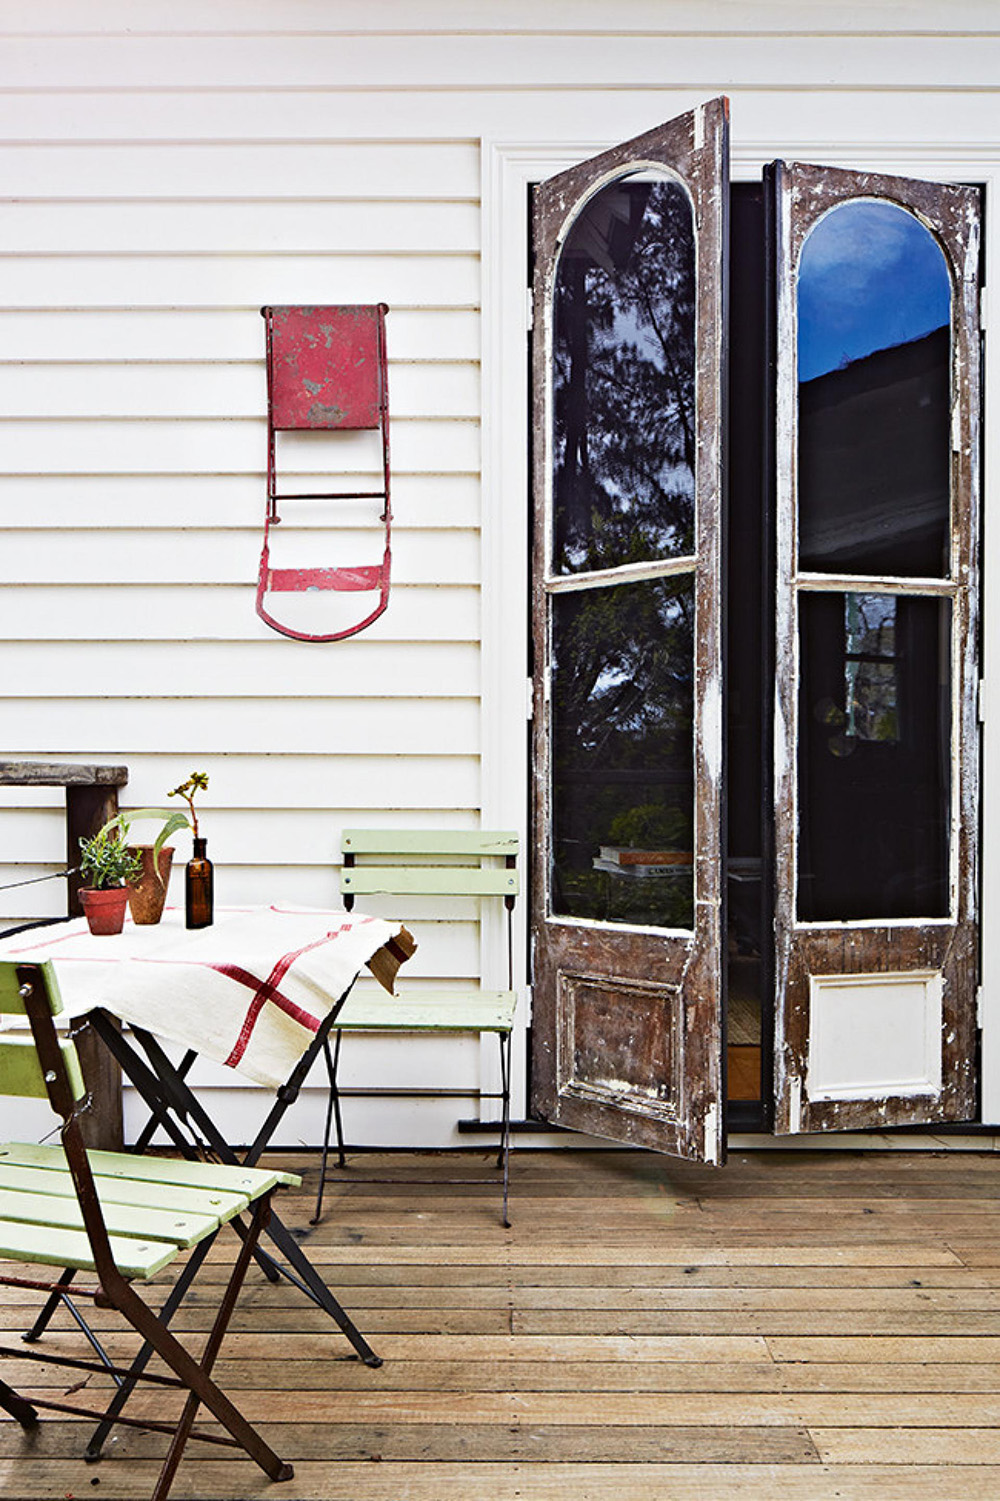 rustic-outdoor-tables-chairs-weatherboard-mar14-20150401101615~q75,dx1920y-u1r1g0